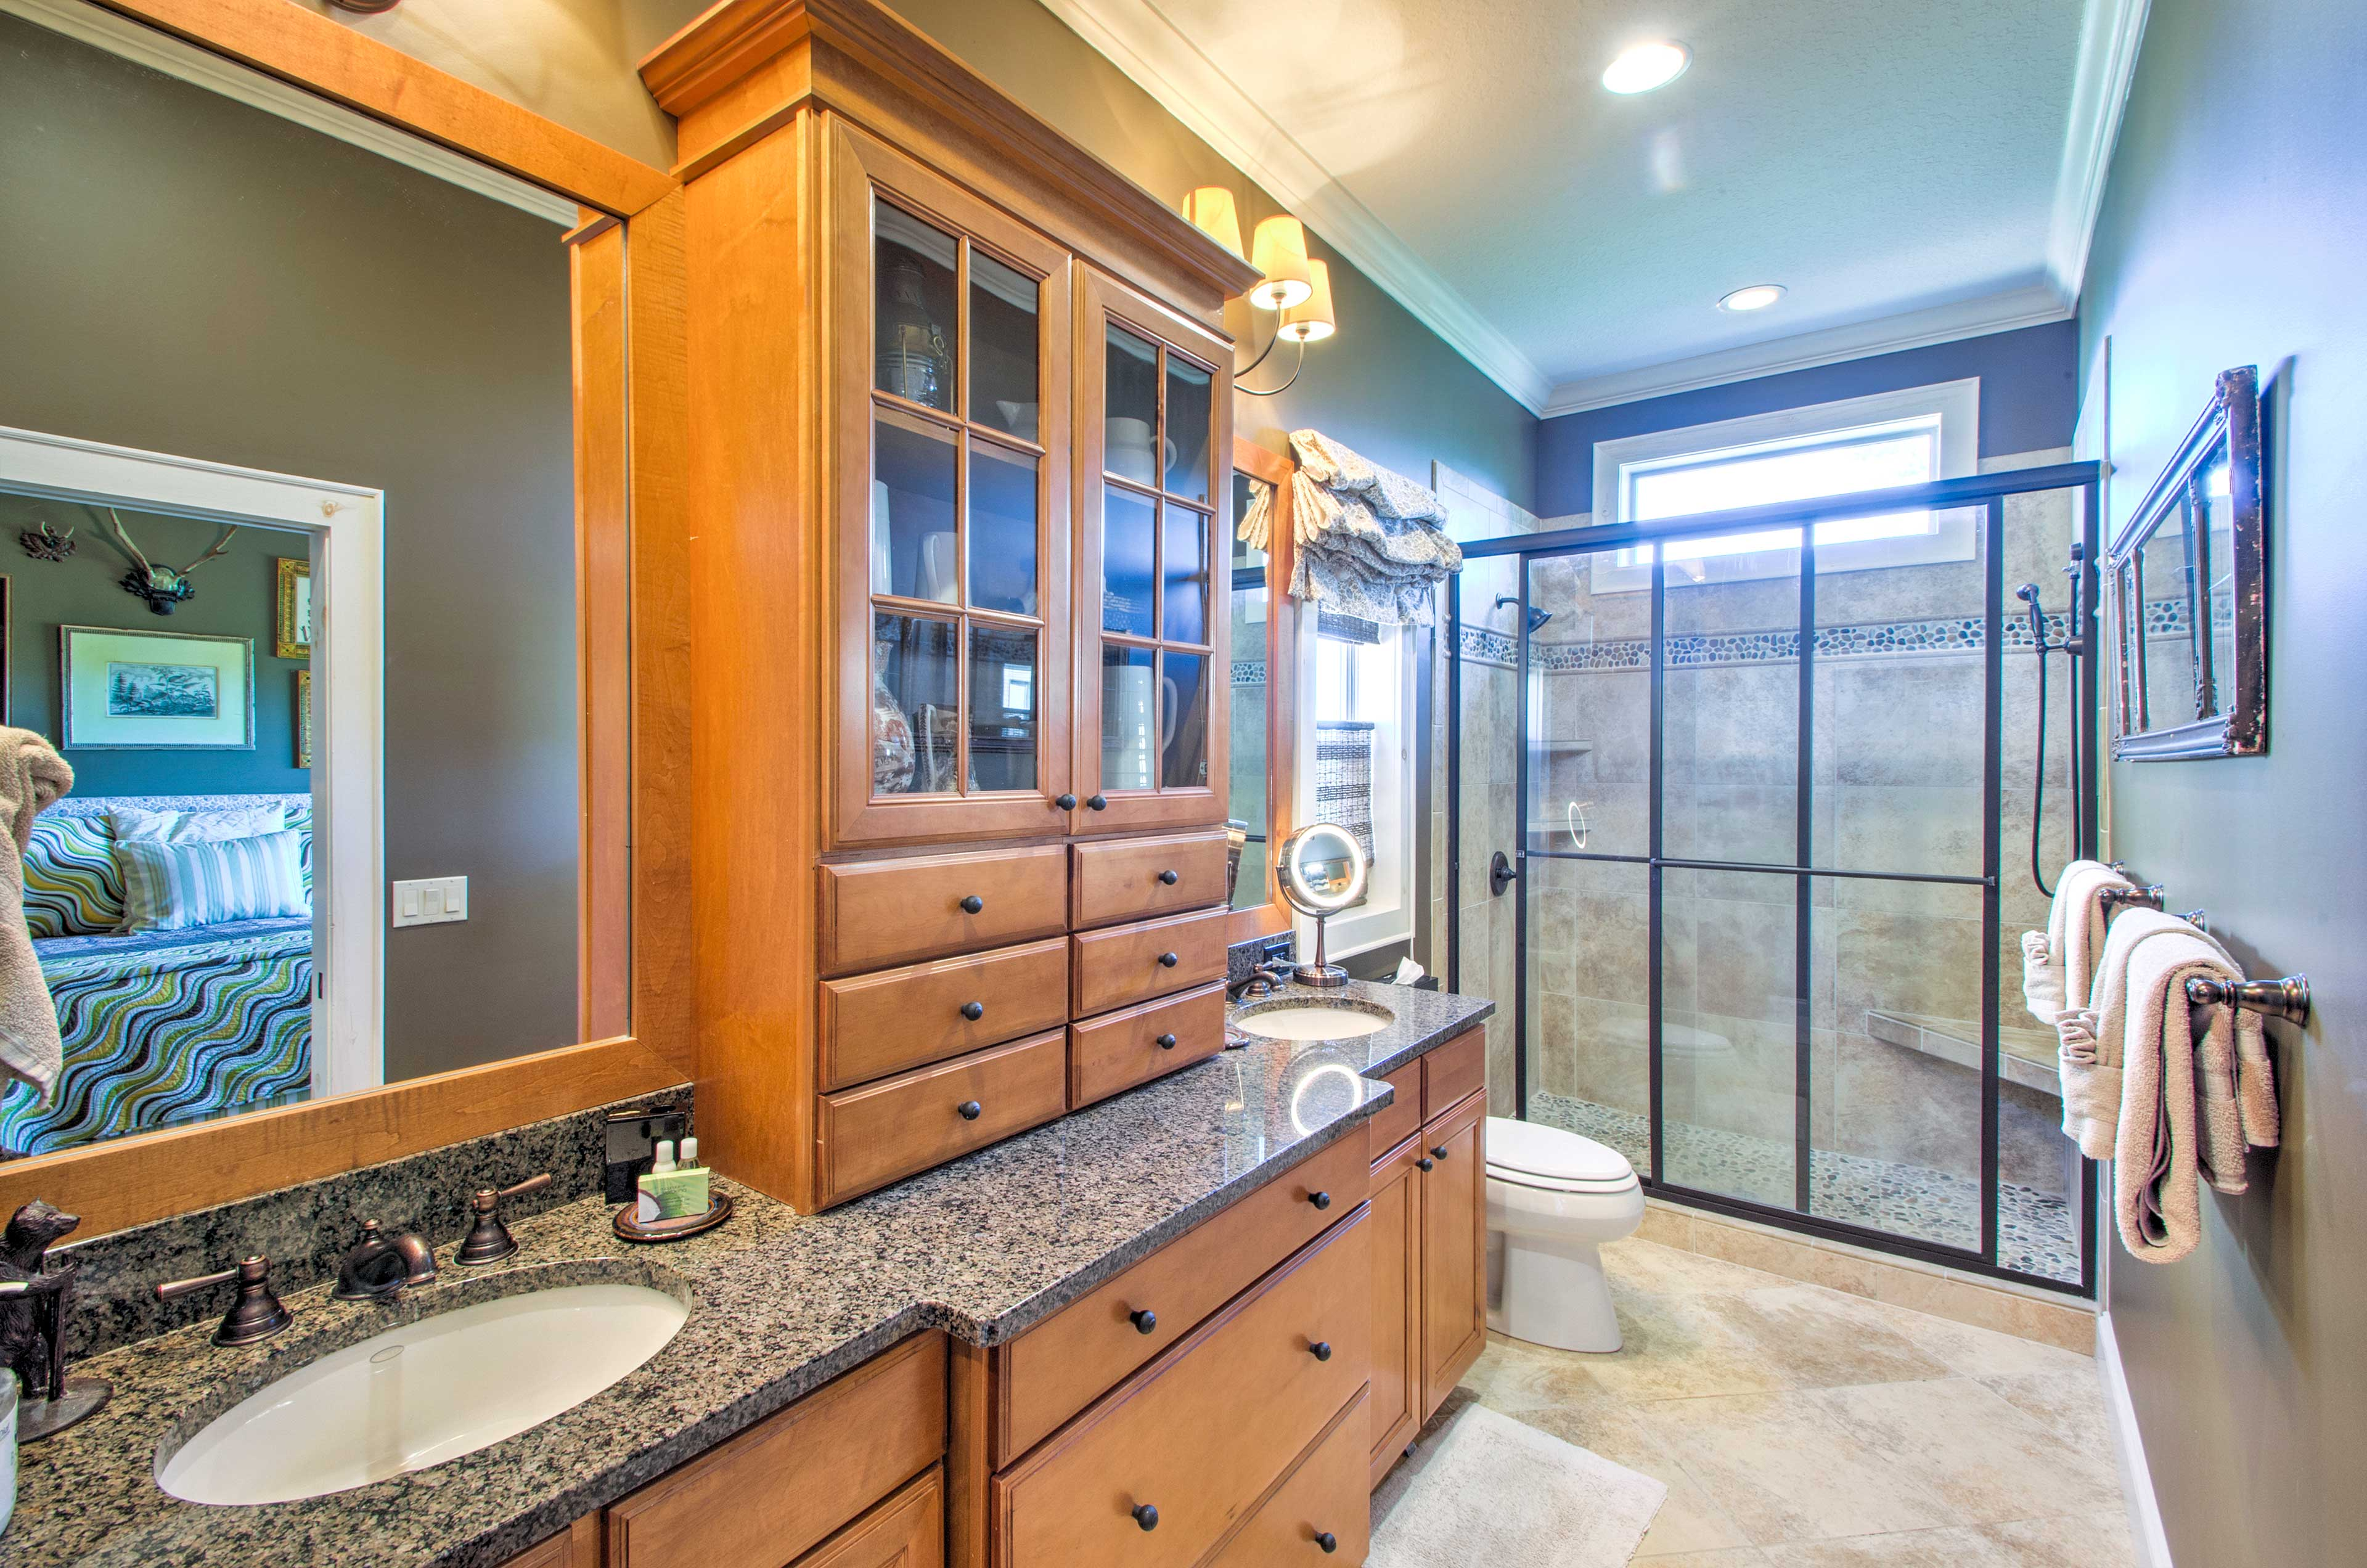 The master's en-suite bathroom features a double vanity and walk-in shower.